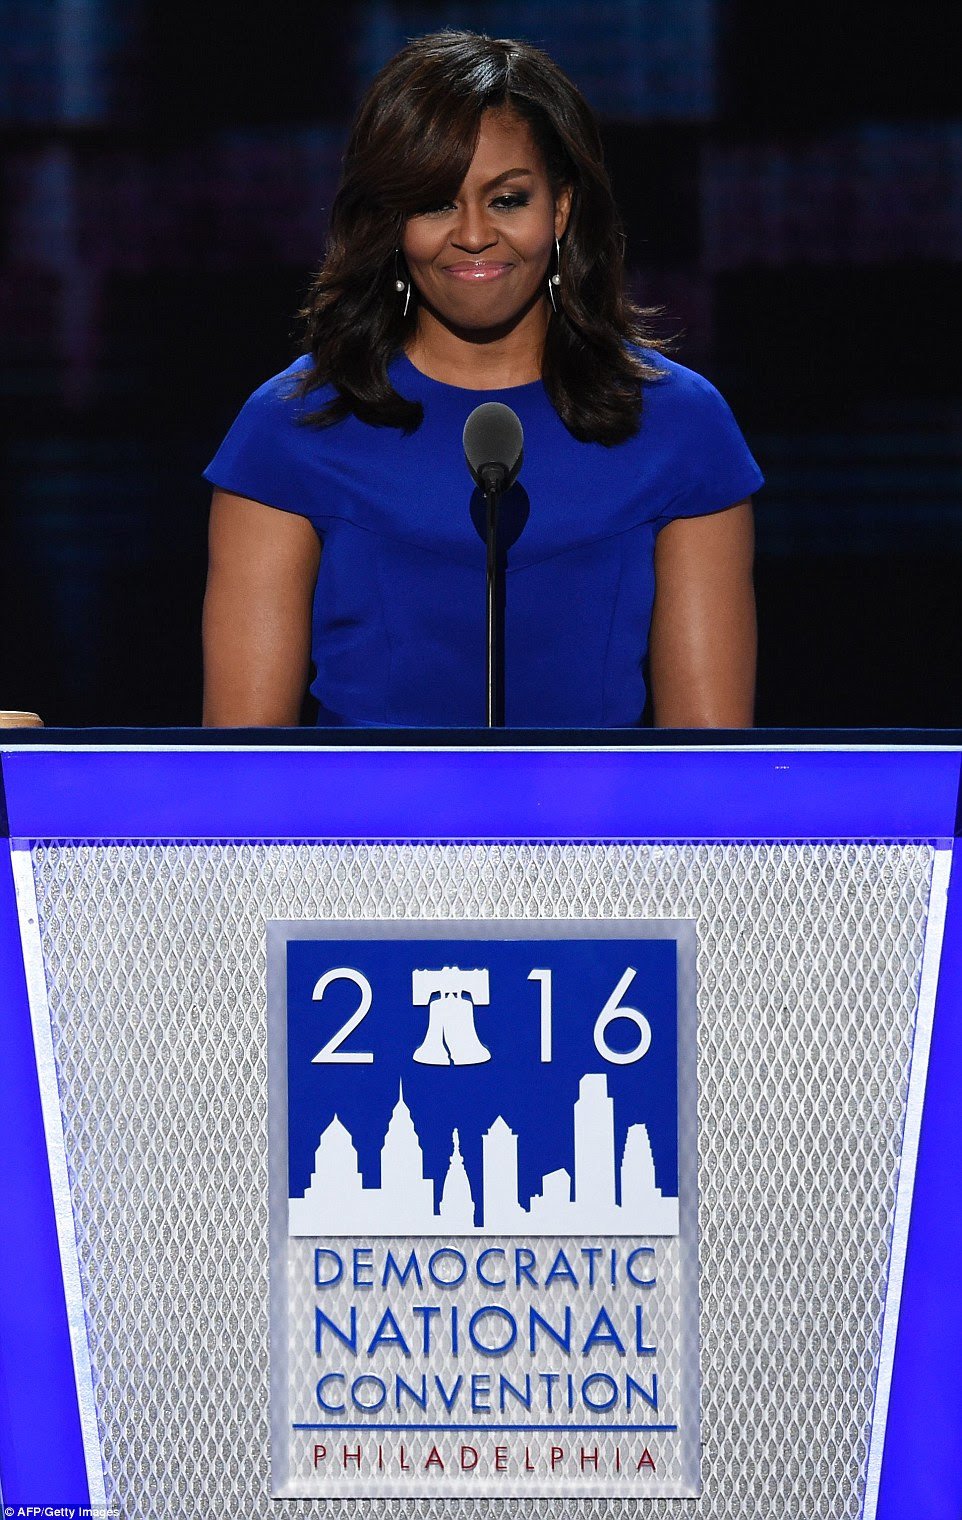 First lady Michelle Obama's convention speech Monday night began as a pleasant story about her teenage daughters who arrived at the White House as children